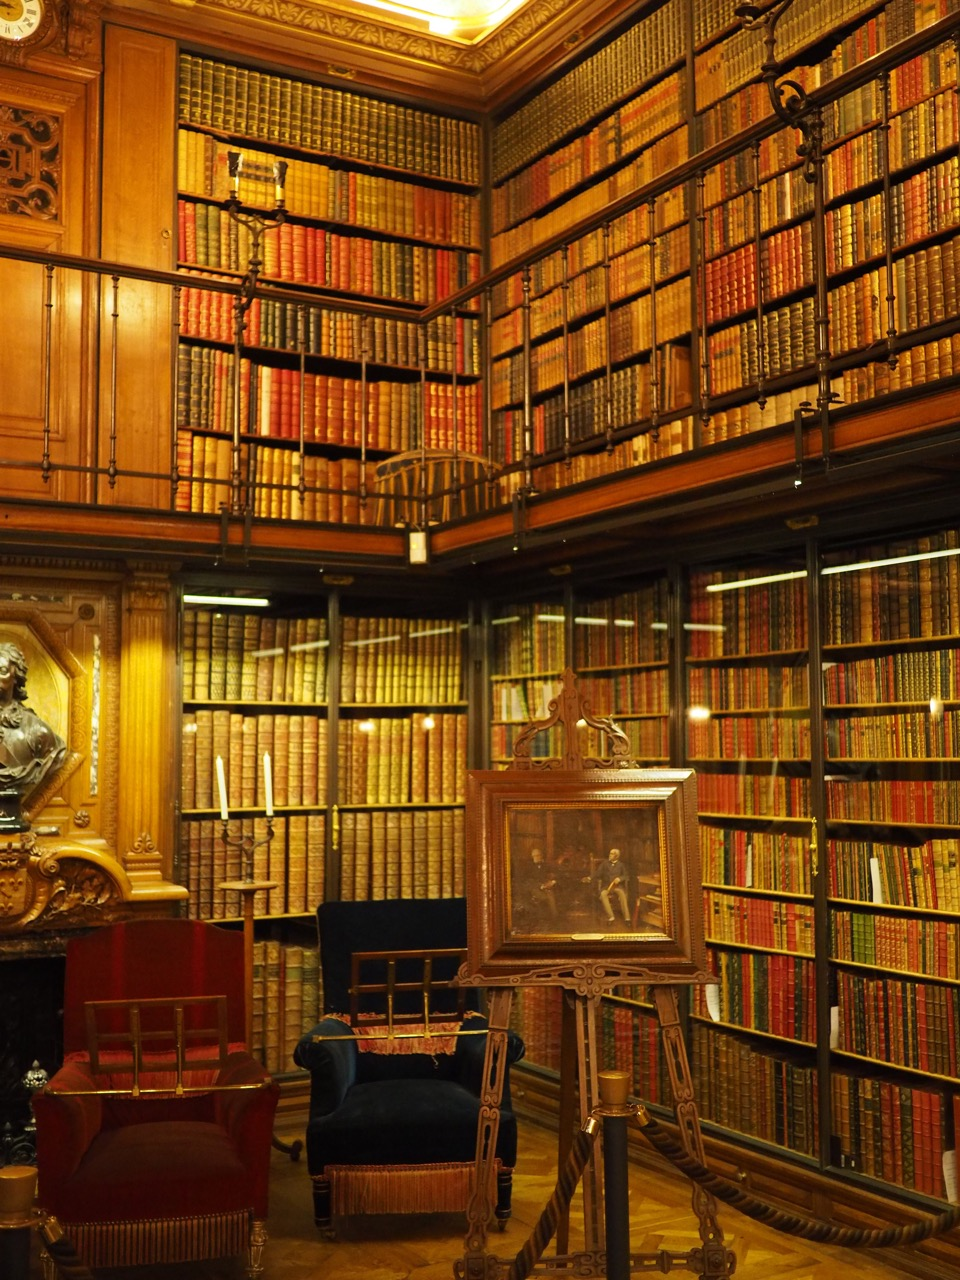 Bibliotheque chateau de chantilly